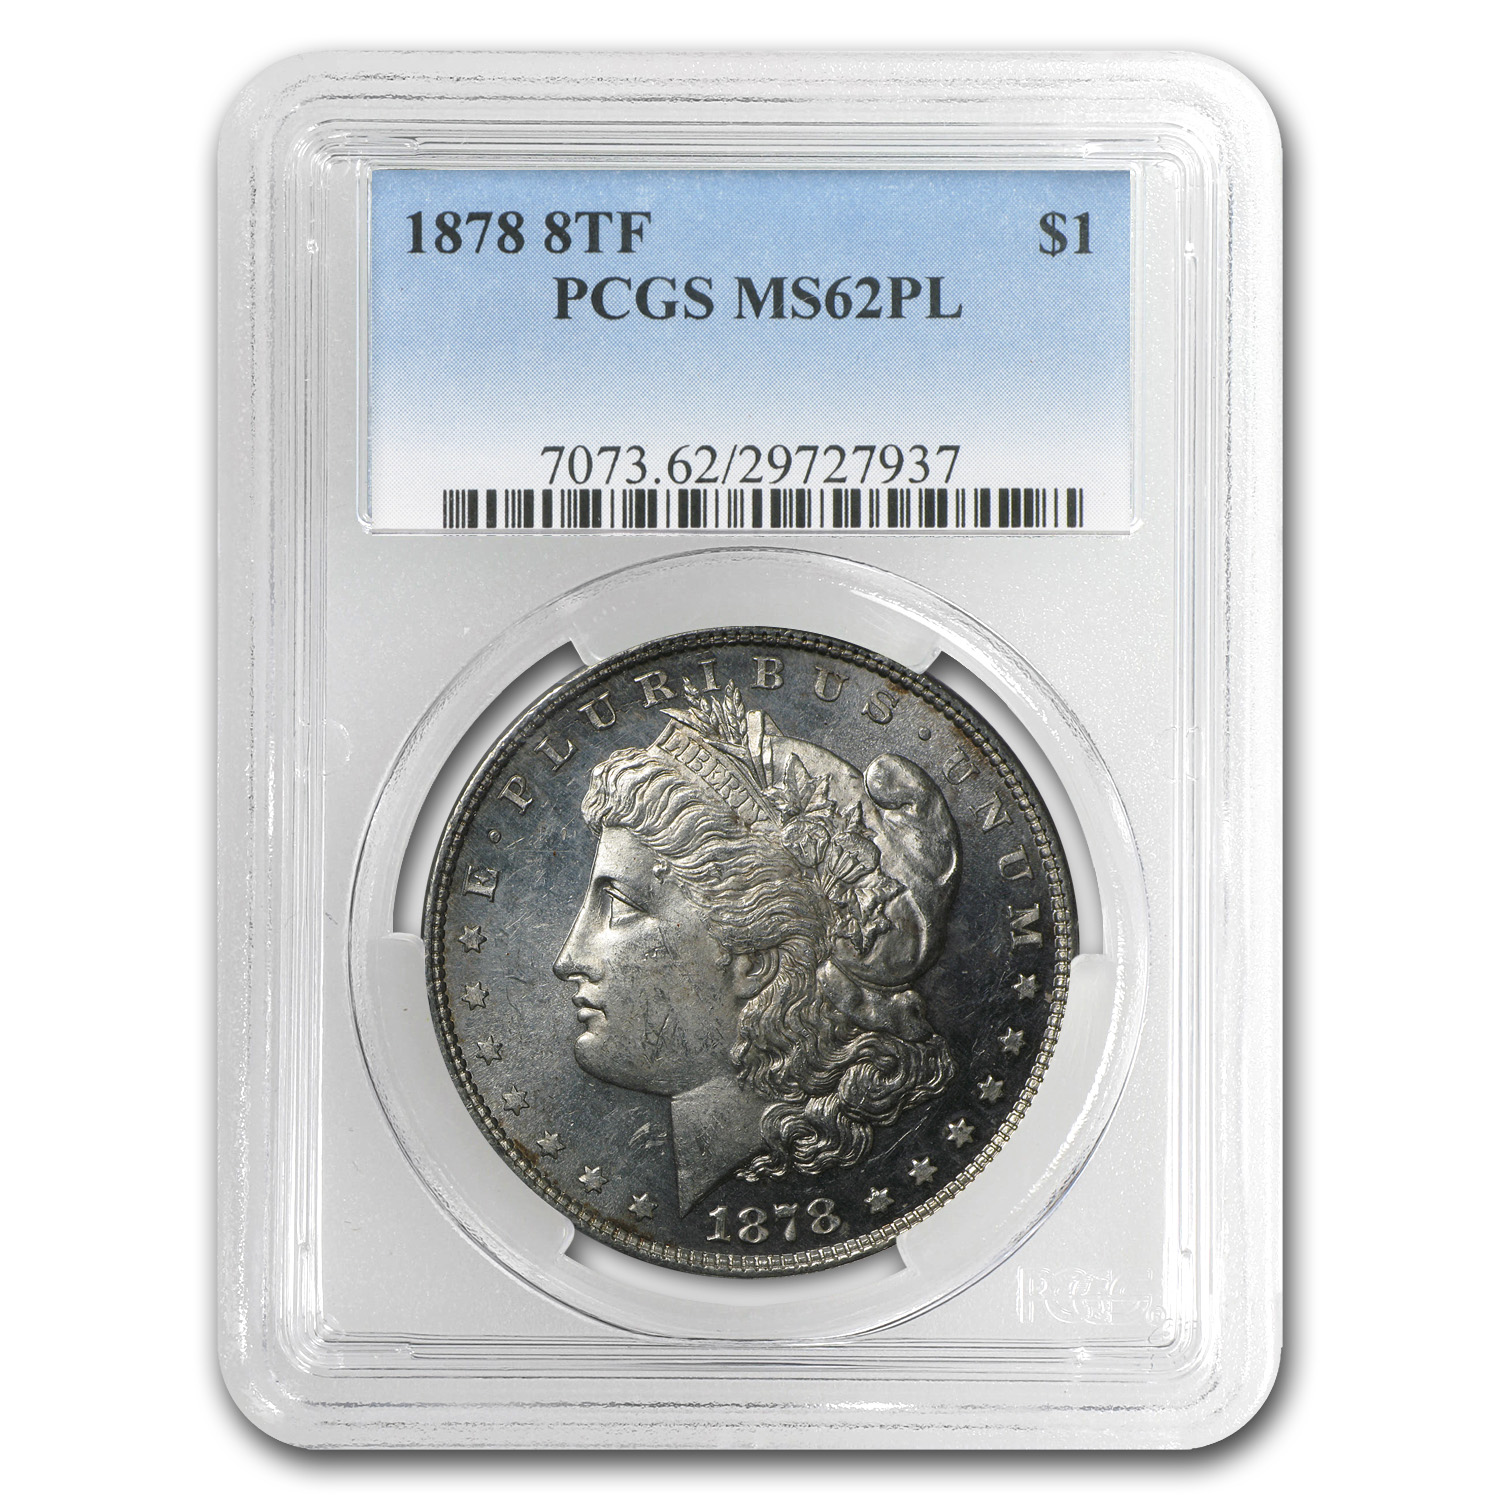 1878 Morgan Dollar 8 Tailfeathers MS-62 PL PCGS